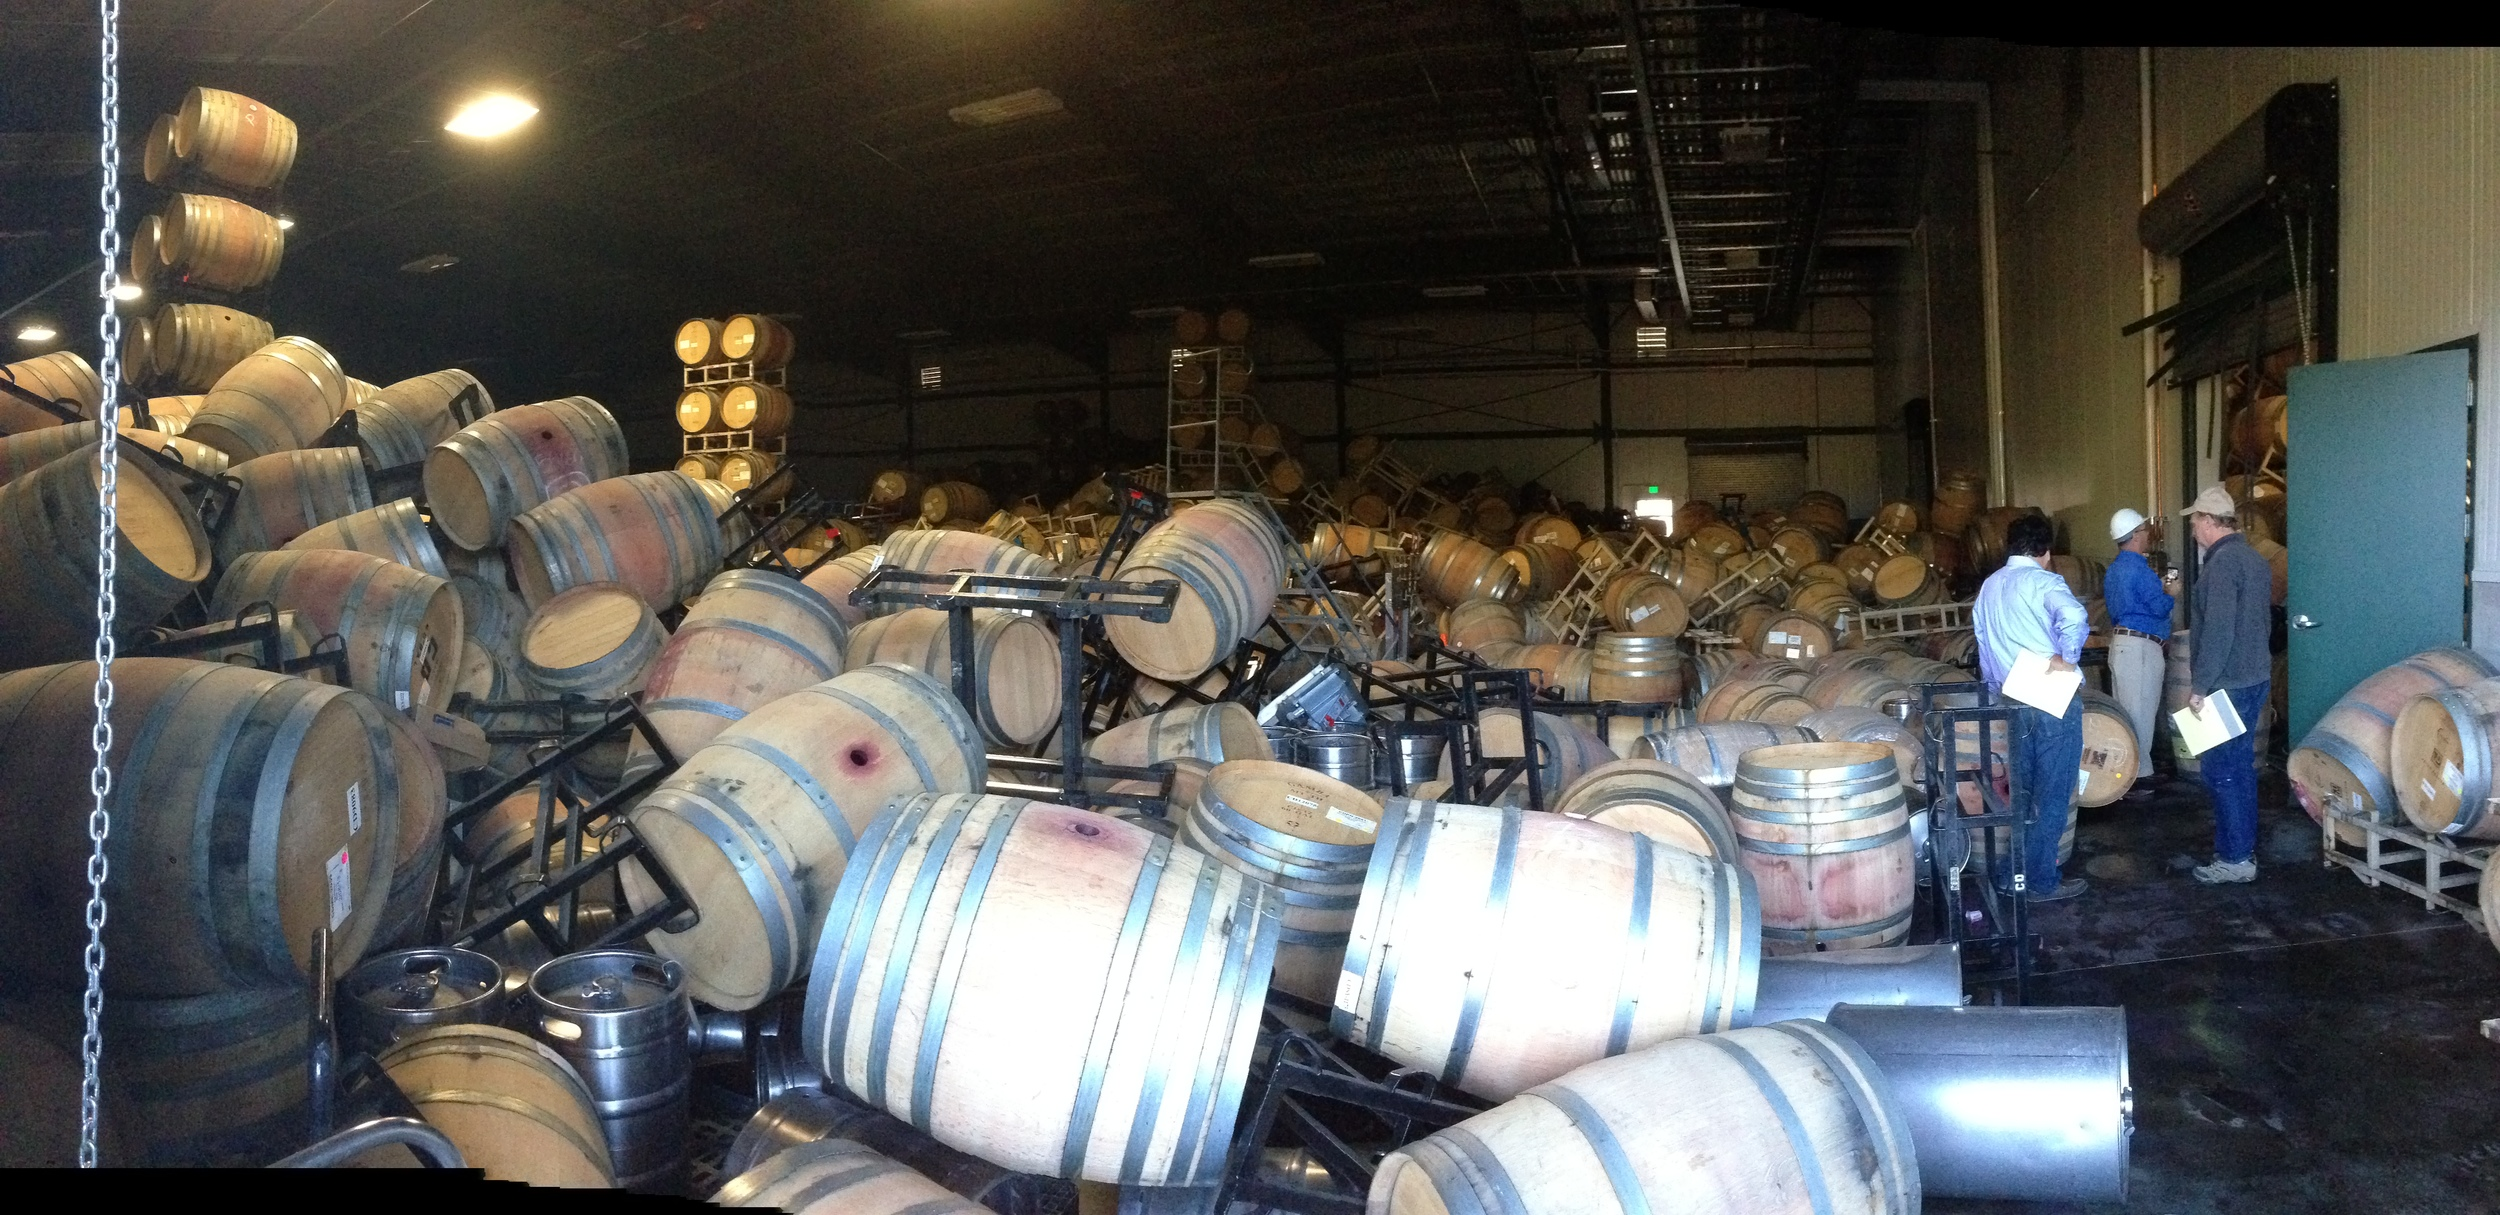 The Cornerstone Cellars 2013 vintage is somewhere in there.